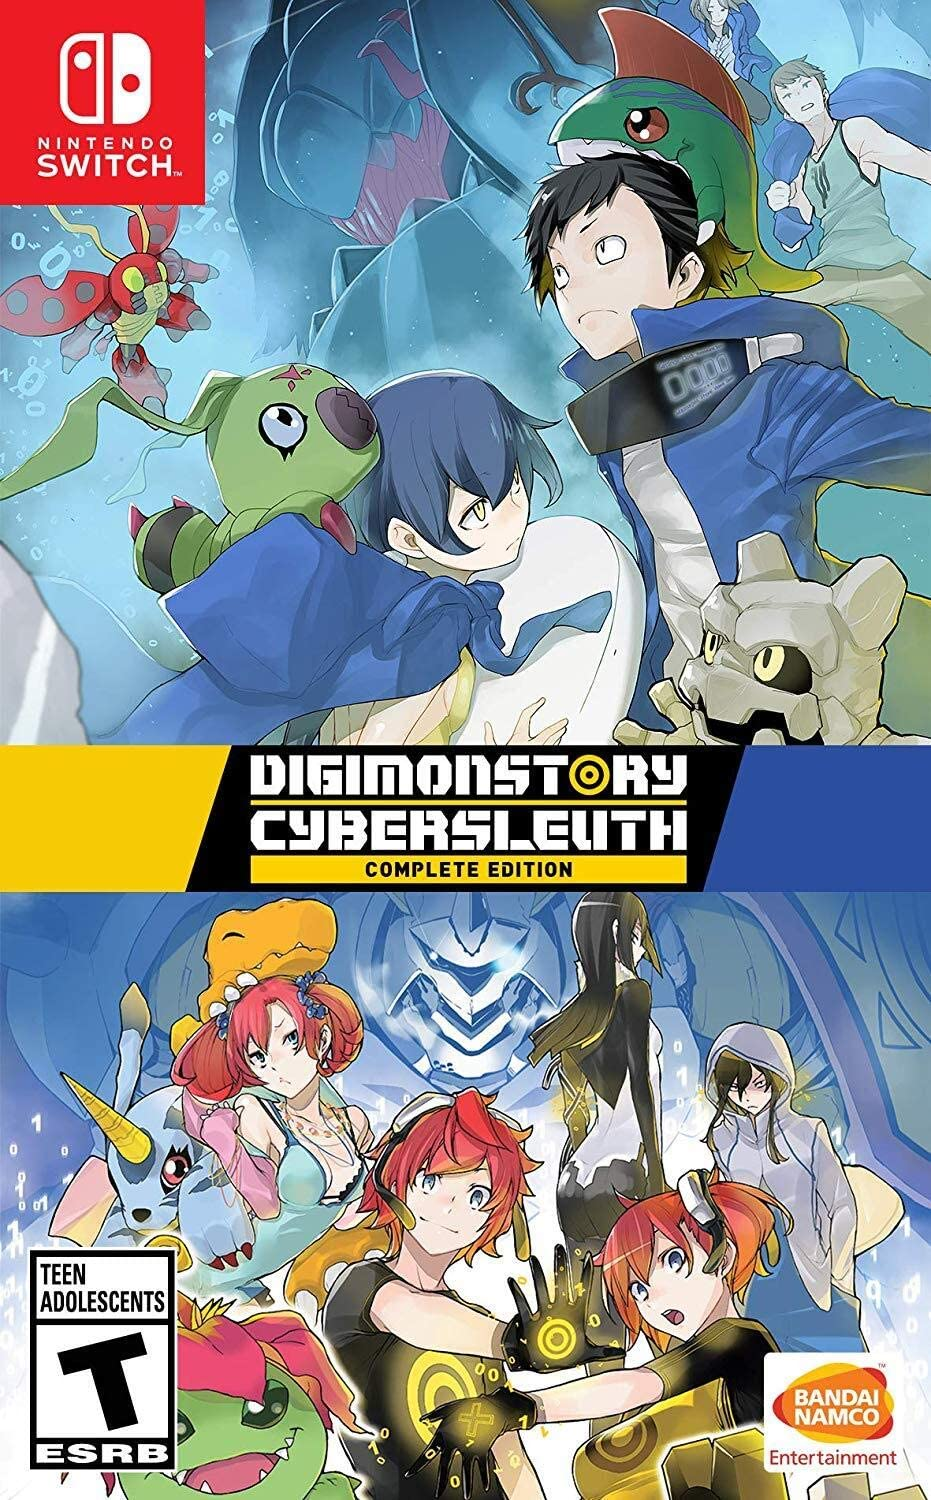 Digimon Story Cyber Sleuth: Complete Edition - Nintendo Switch